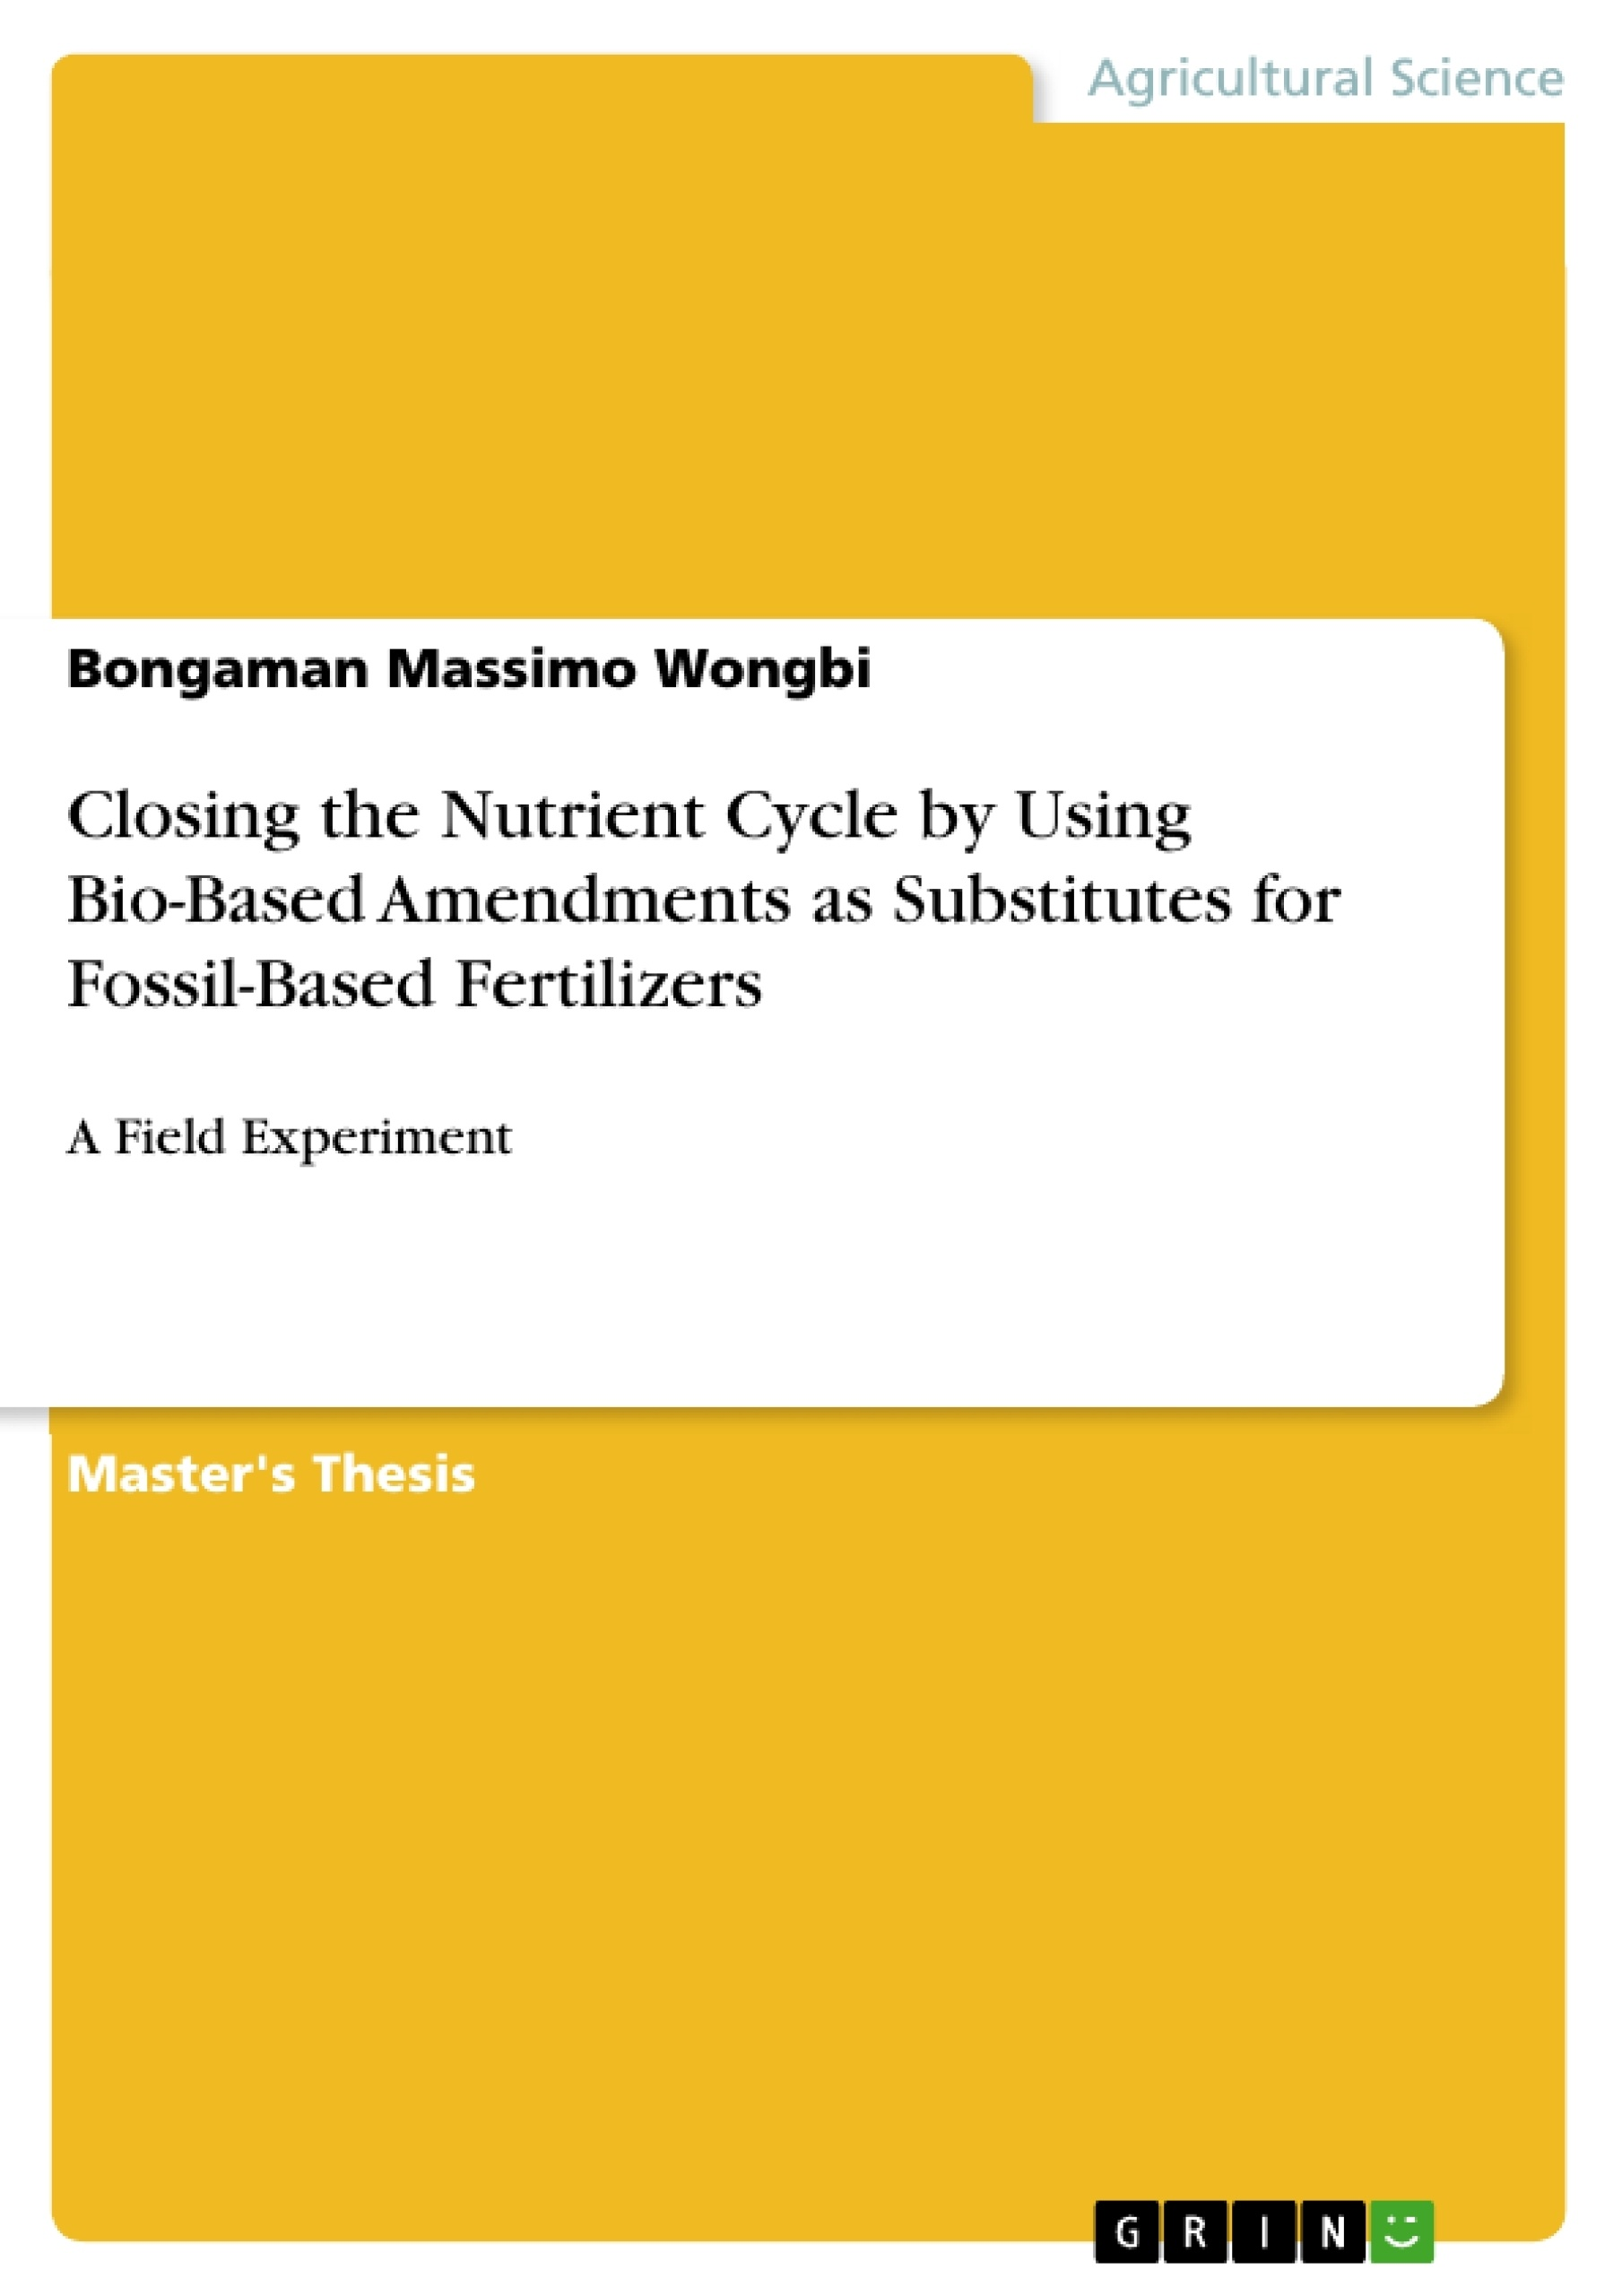 Title: Closing the Nutrient Cycle by Using Bio-Based Amendments as Substitutes for Fossil-Based Fertilizers